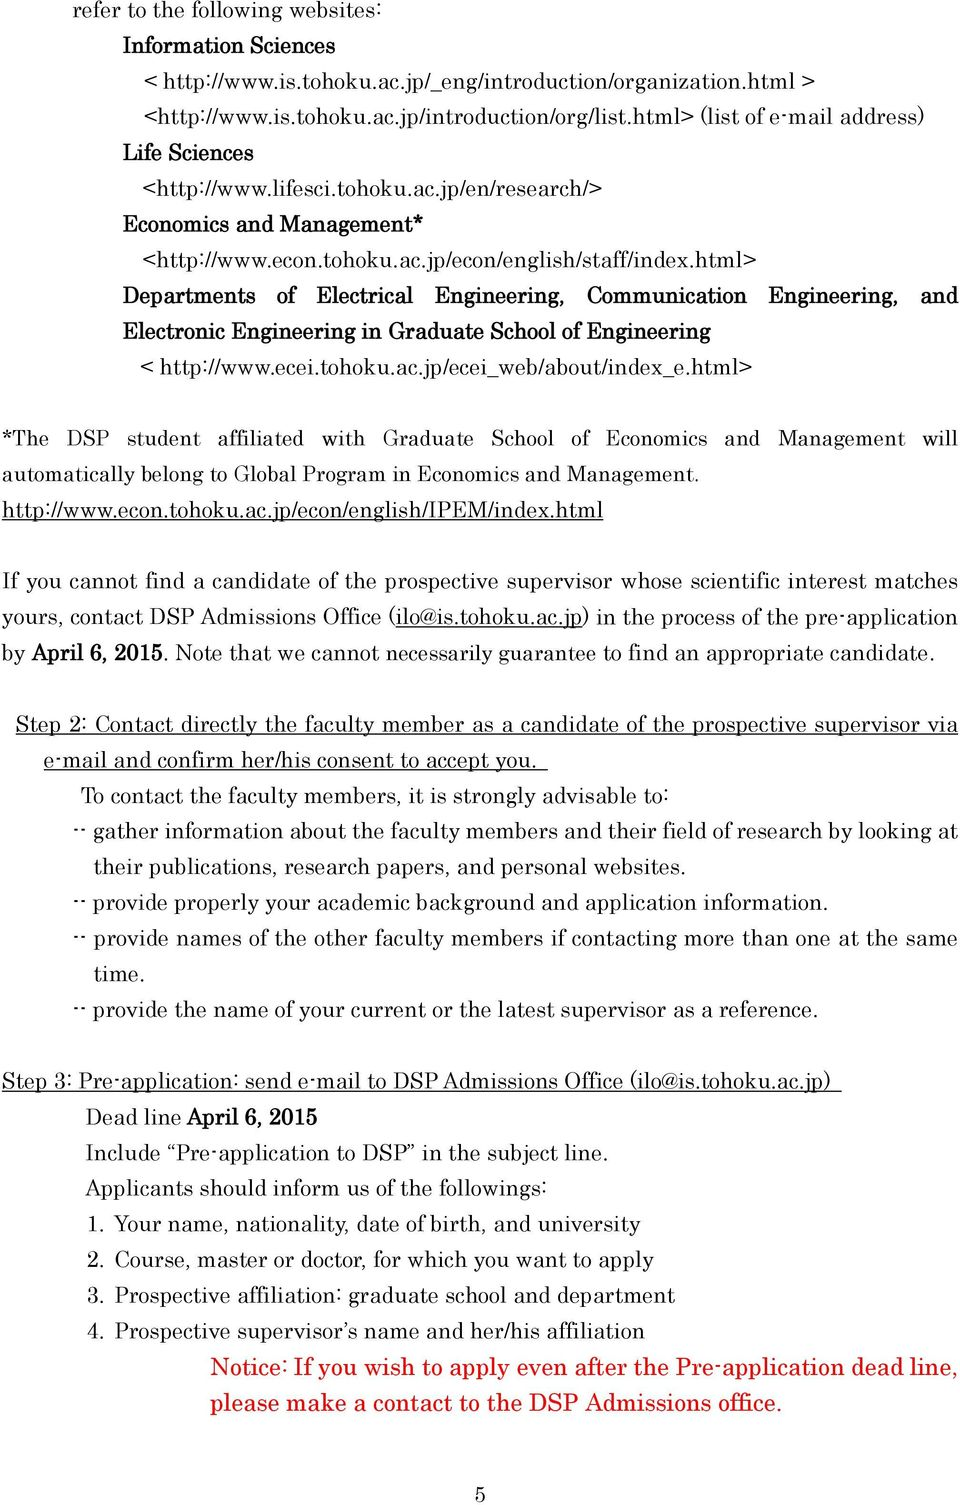 html> Departments of Electrical Engineering, Communication Engineering, and Electronic Engineering in Graduate School of Engineering < http://www.ecei.tohoku.ac.jp/ecei_web/about/index_e.